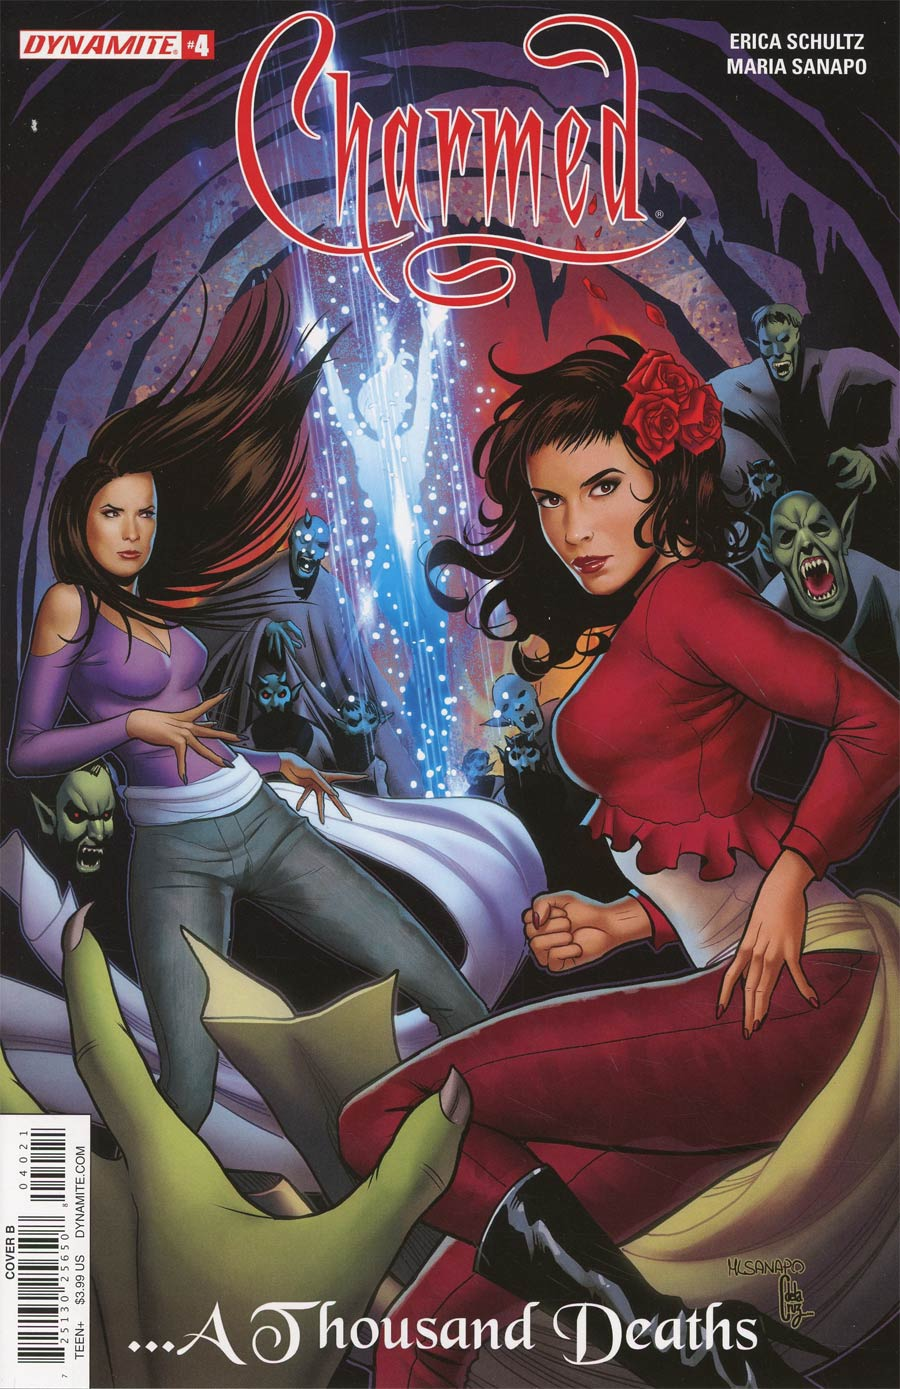 Charmed Vol 2 #4 Cover B Variant Maria Sanapo Cover